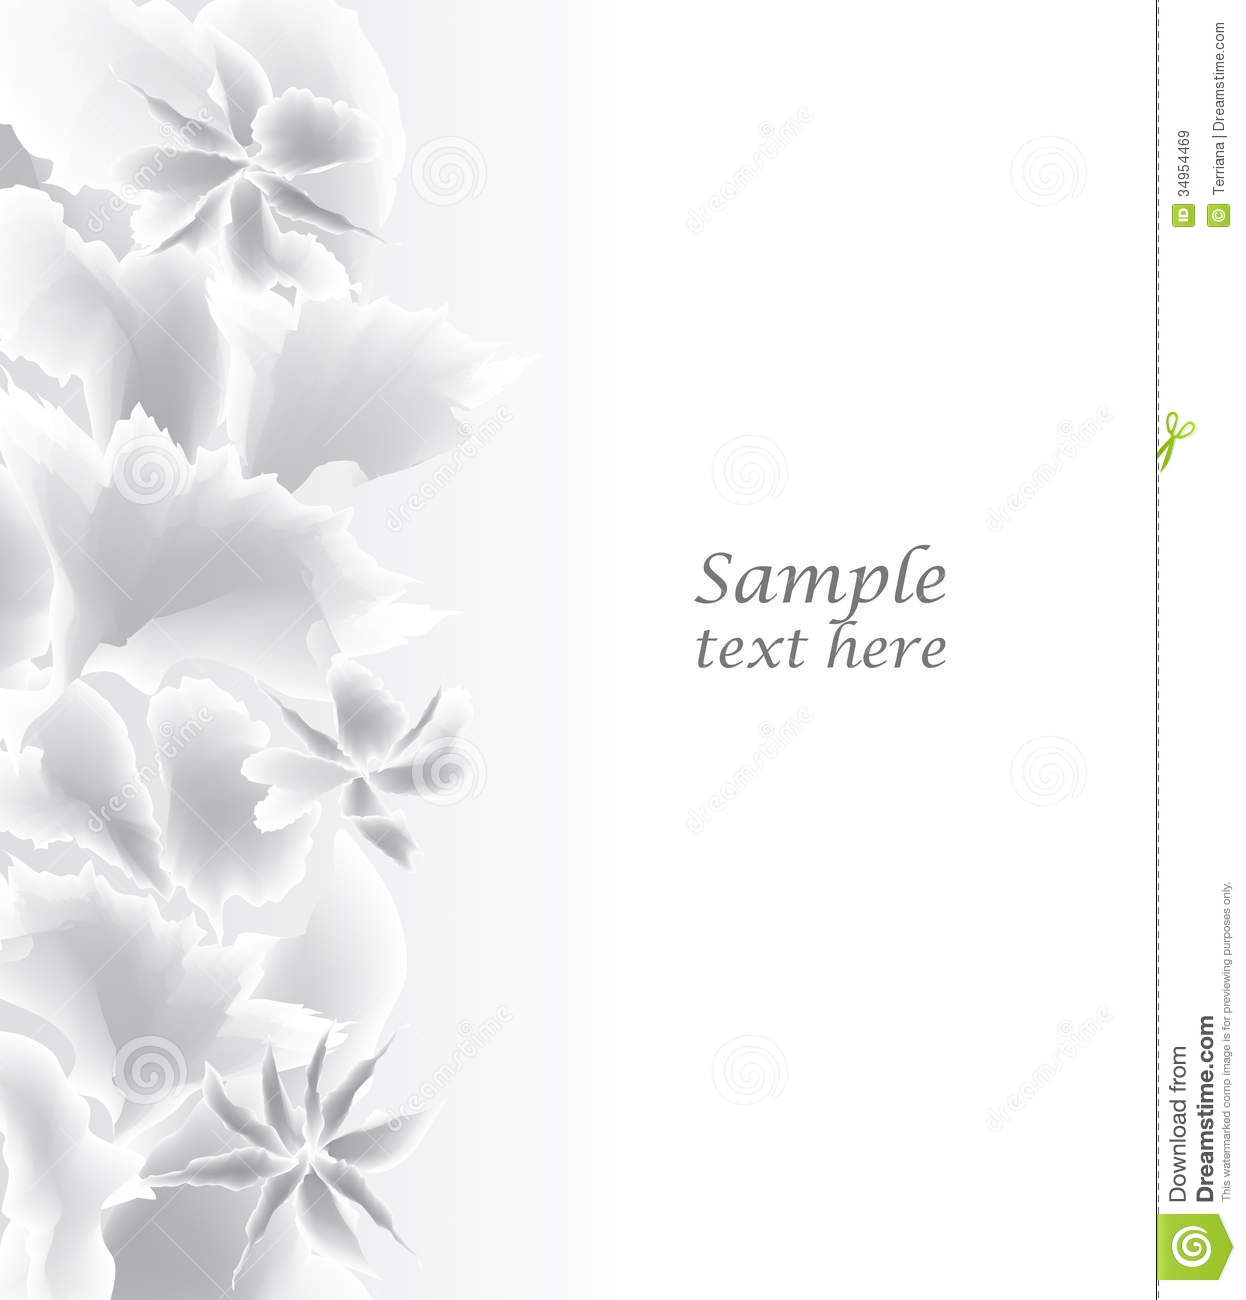 Abstract White Background Floral Border Royalty Free